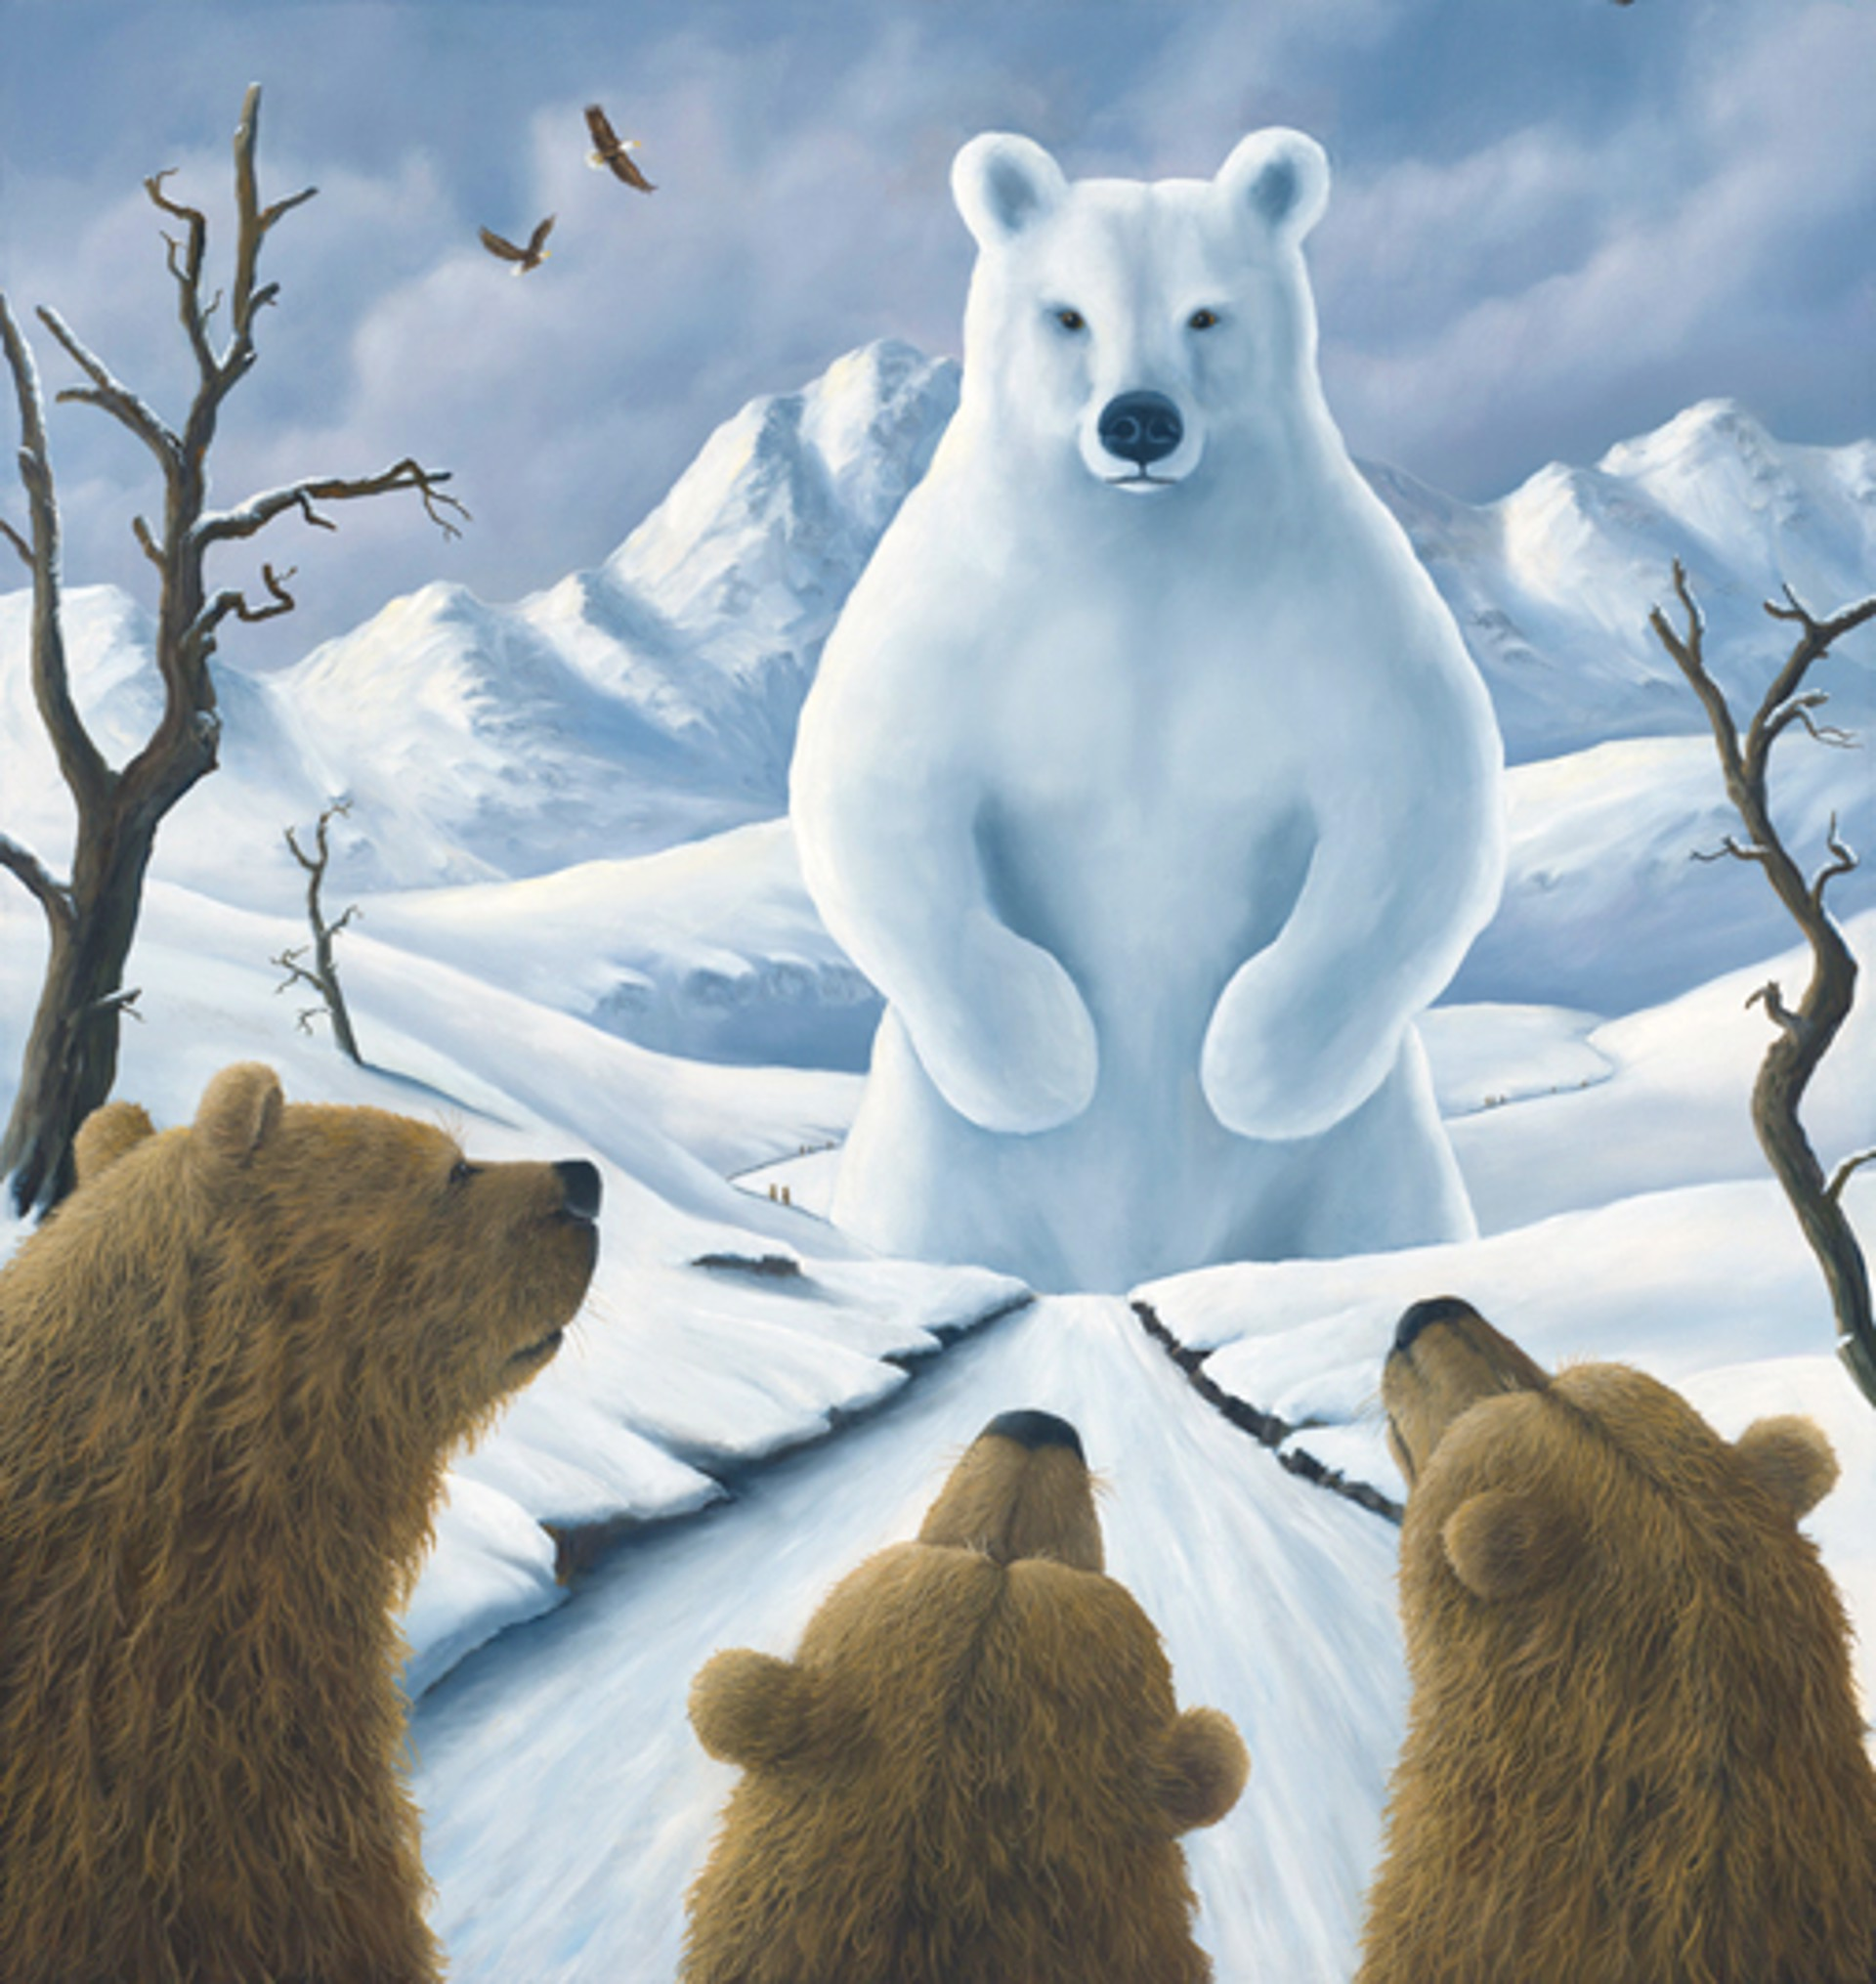 The Guardian #2 by Robert Bissell